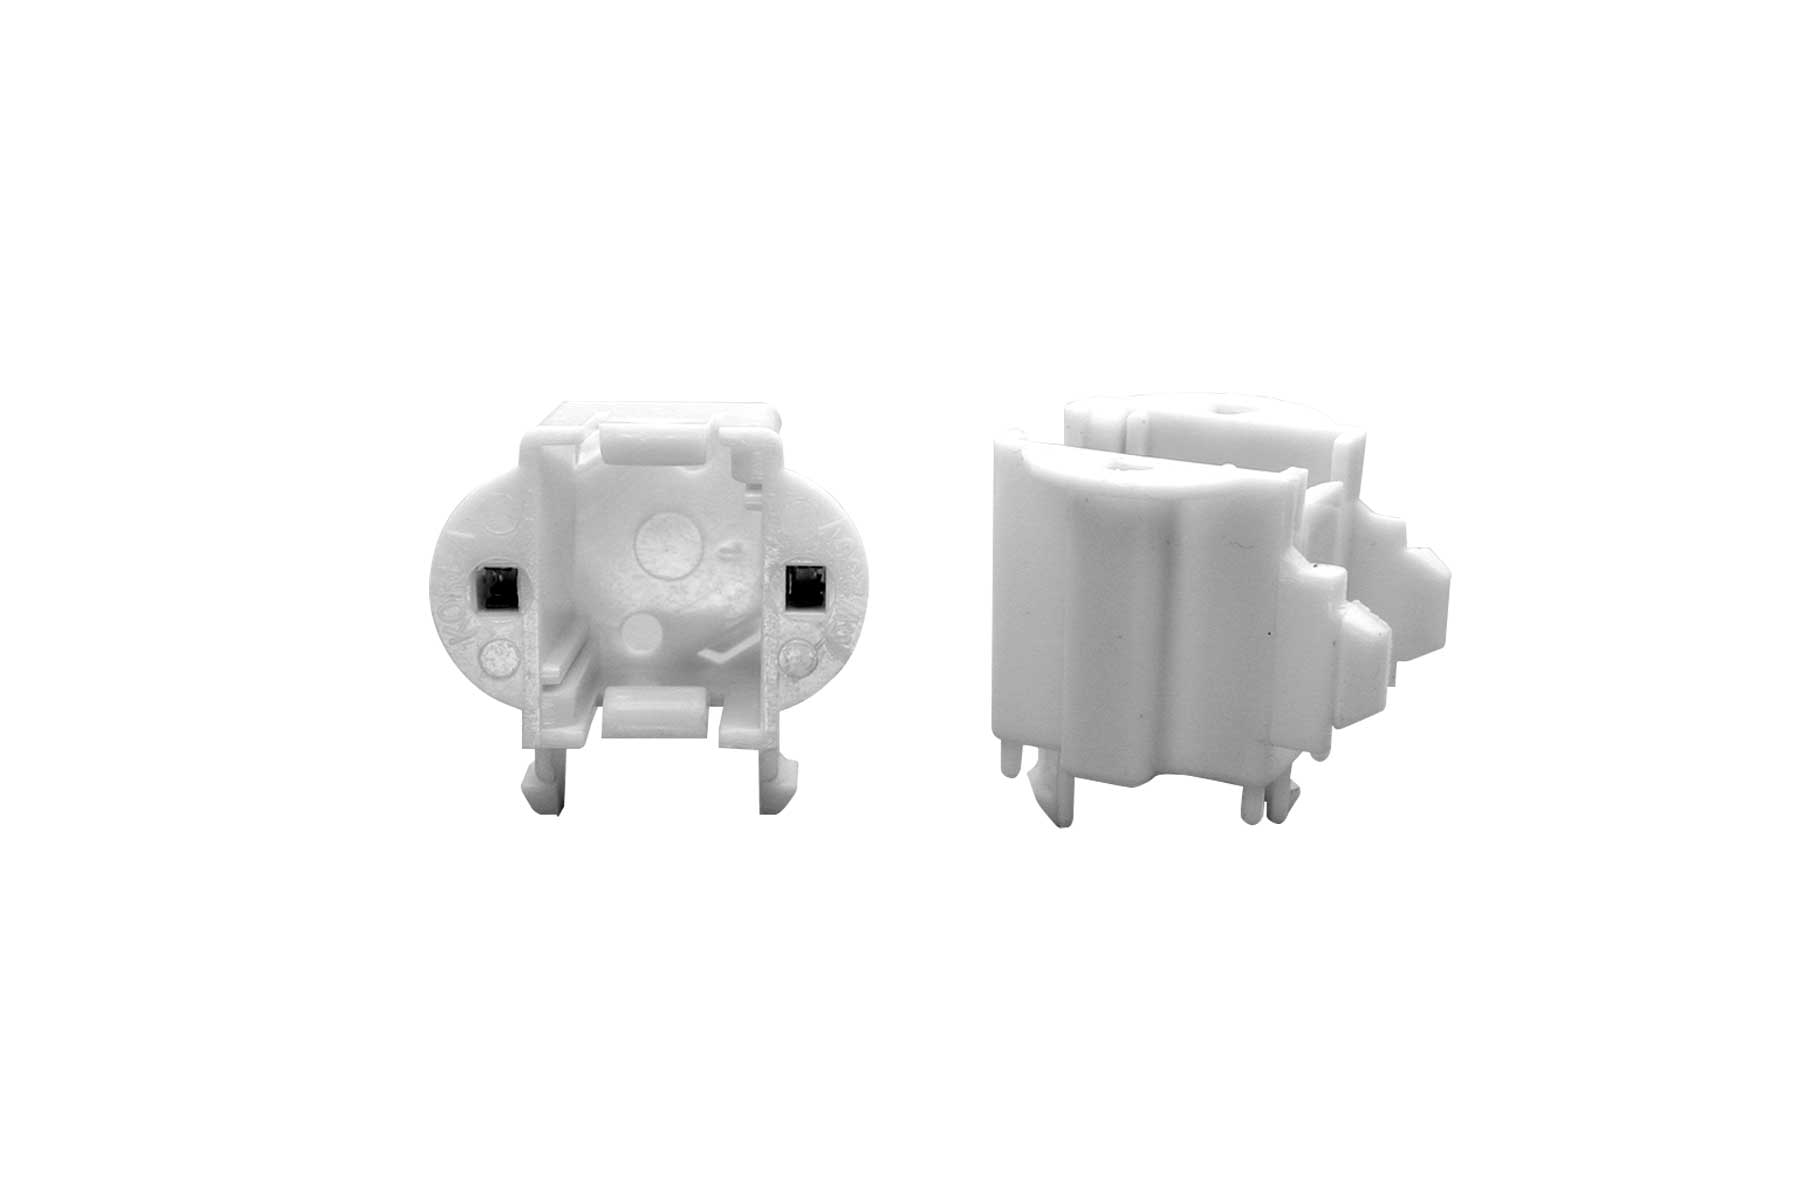 GX23 CFL Light Socket - Horizontal and Vertical Snap-in Mount